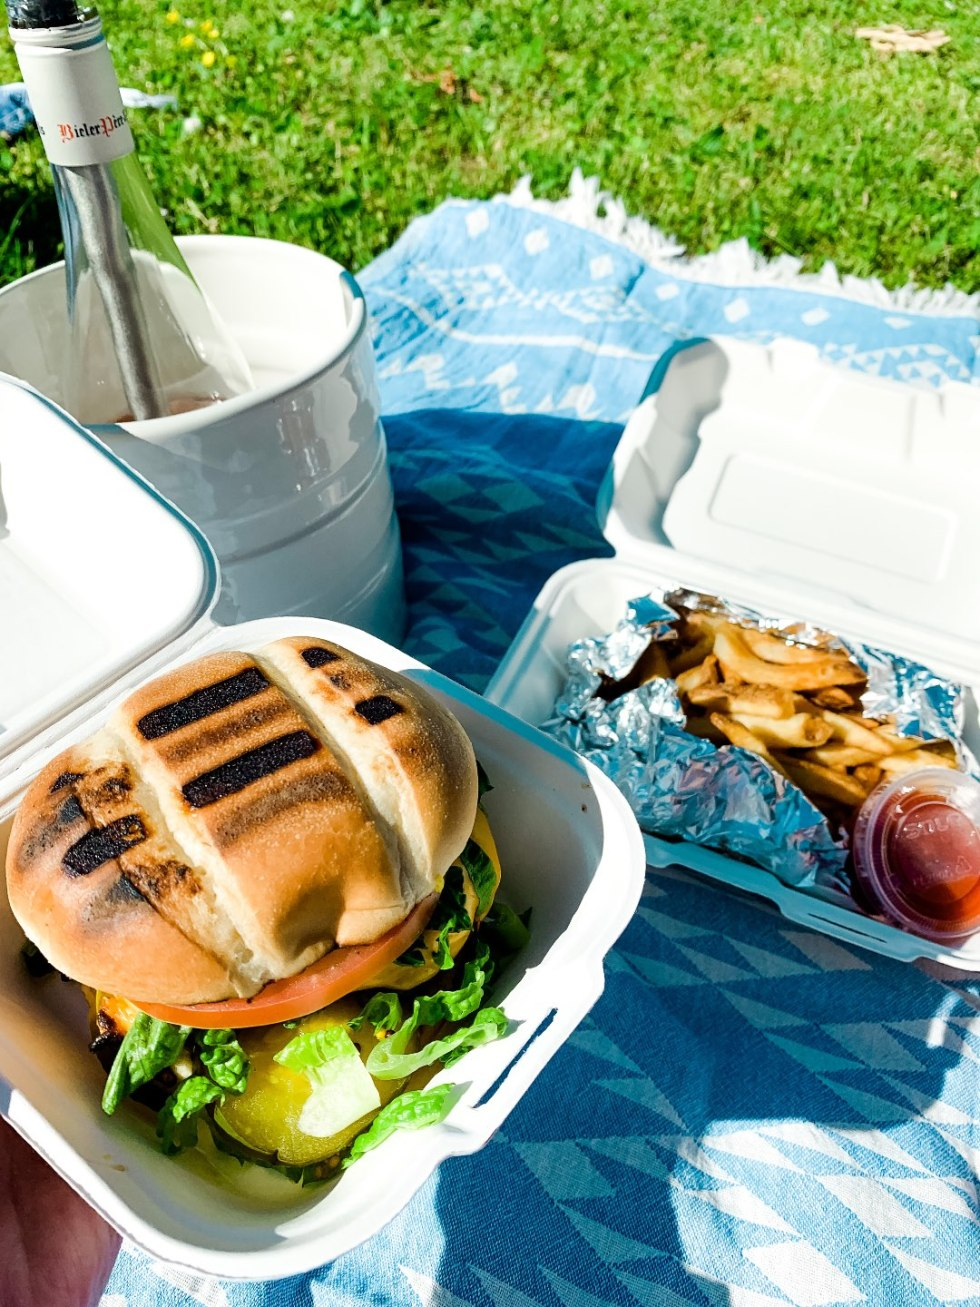 The Top 3 Places to Have a Picnic in Raleigh - I'm Fixin' To - @mbg0112 | Picnic in Raleigh by popular North Carolina blog, I'm Fixin' To: image of a bottle of wine, cheeseburger, and fries on a blue and white tribal print blanket.